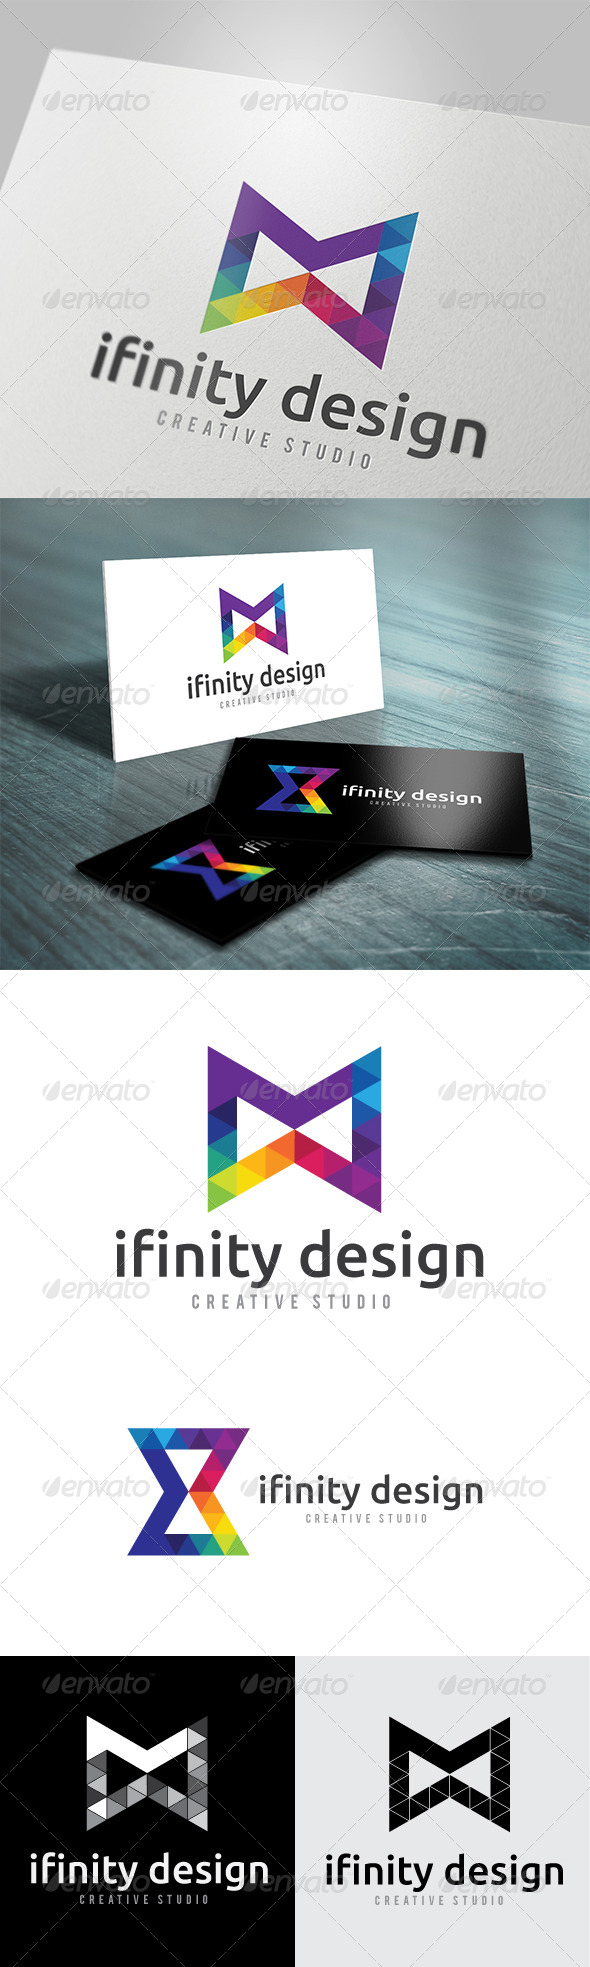 GraphicRiver Infinity Design Logo Templates 5839857